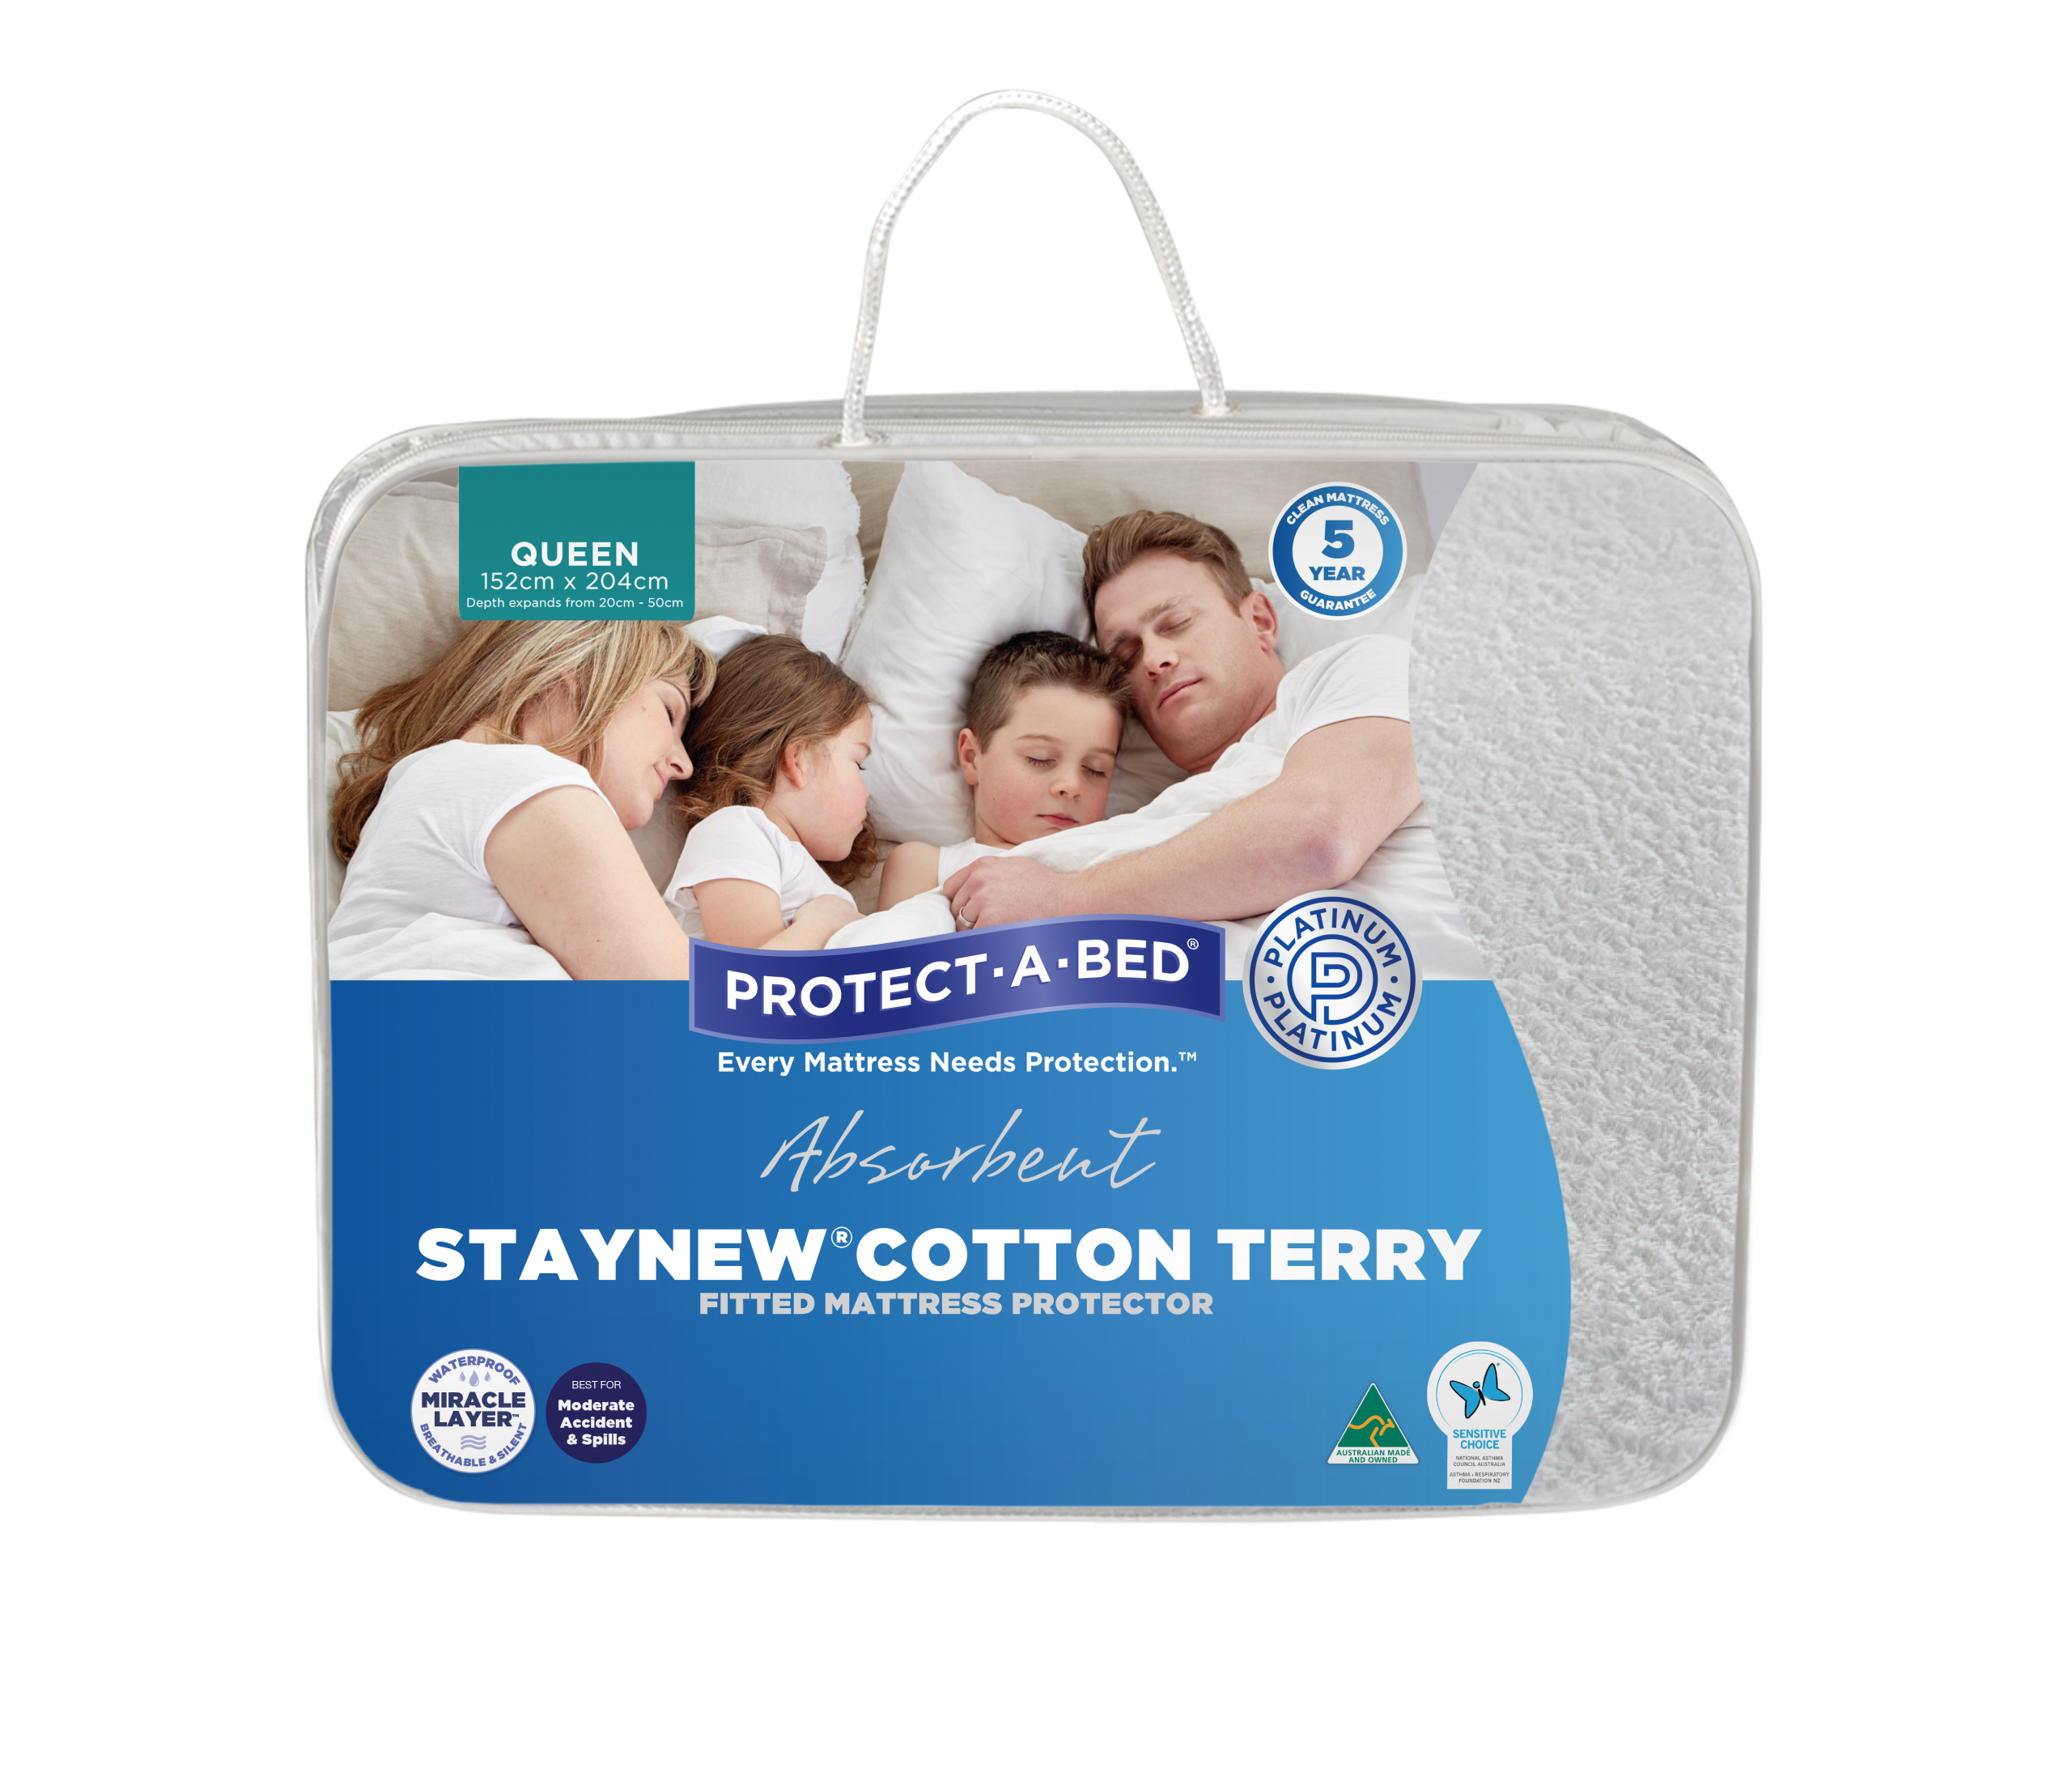 Staynew® Cotton Terry Fitted Mattress Protector